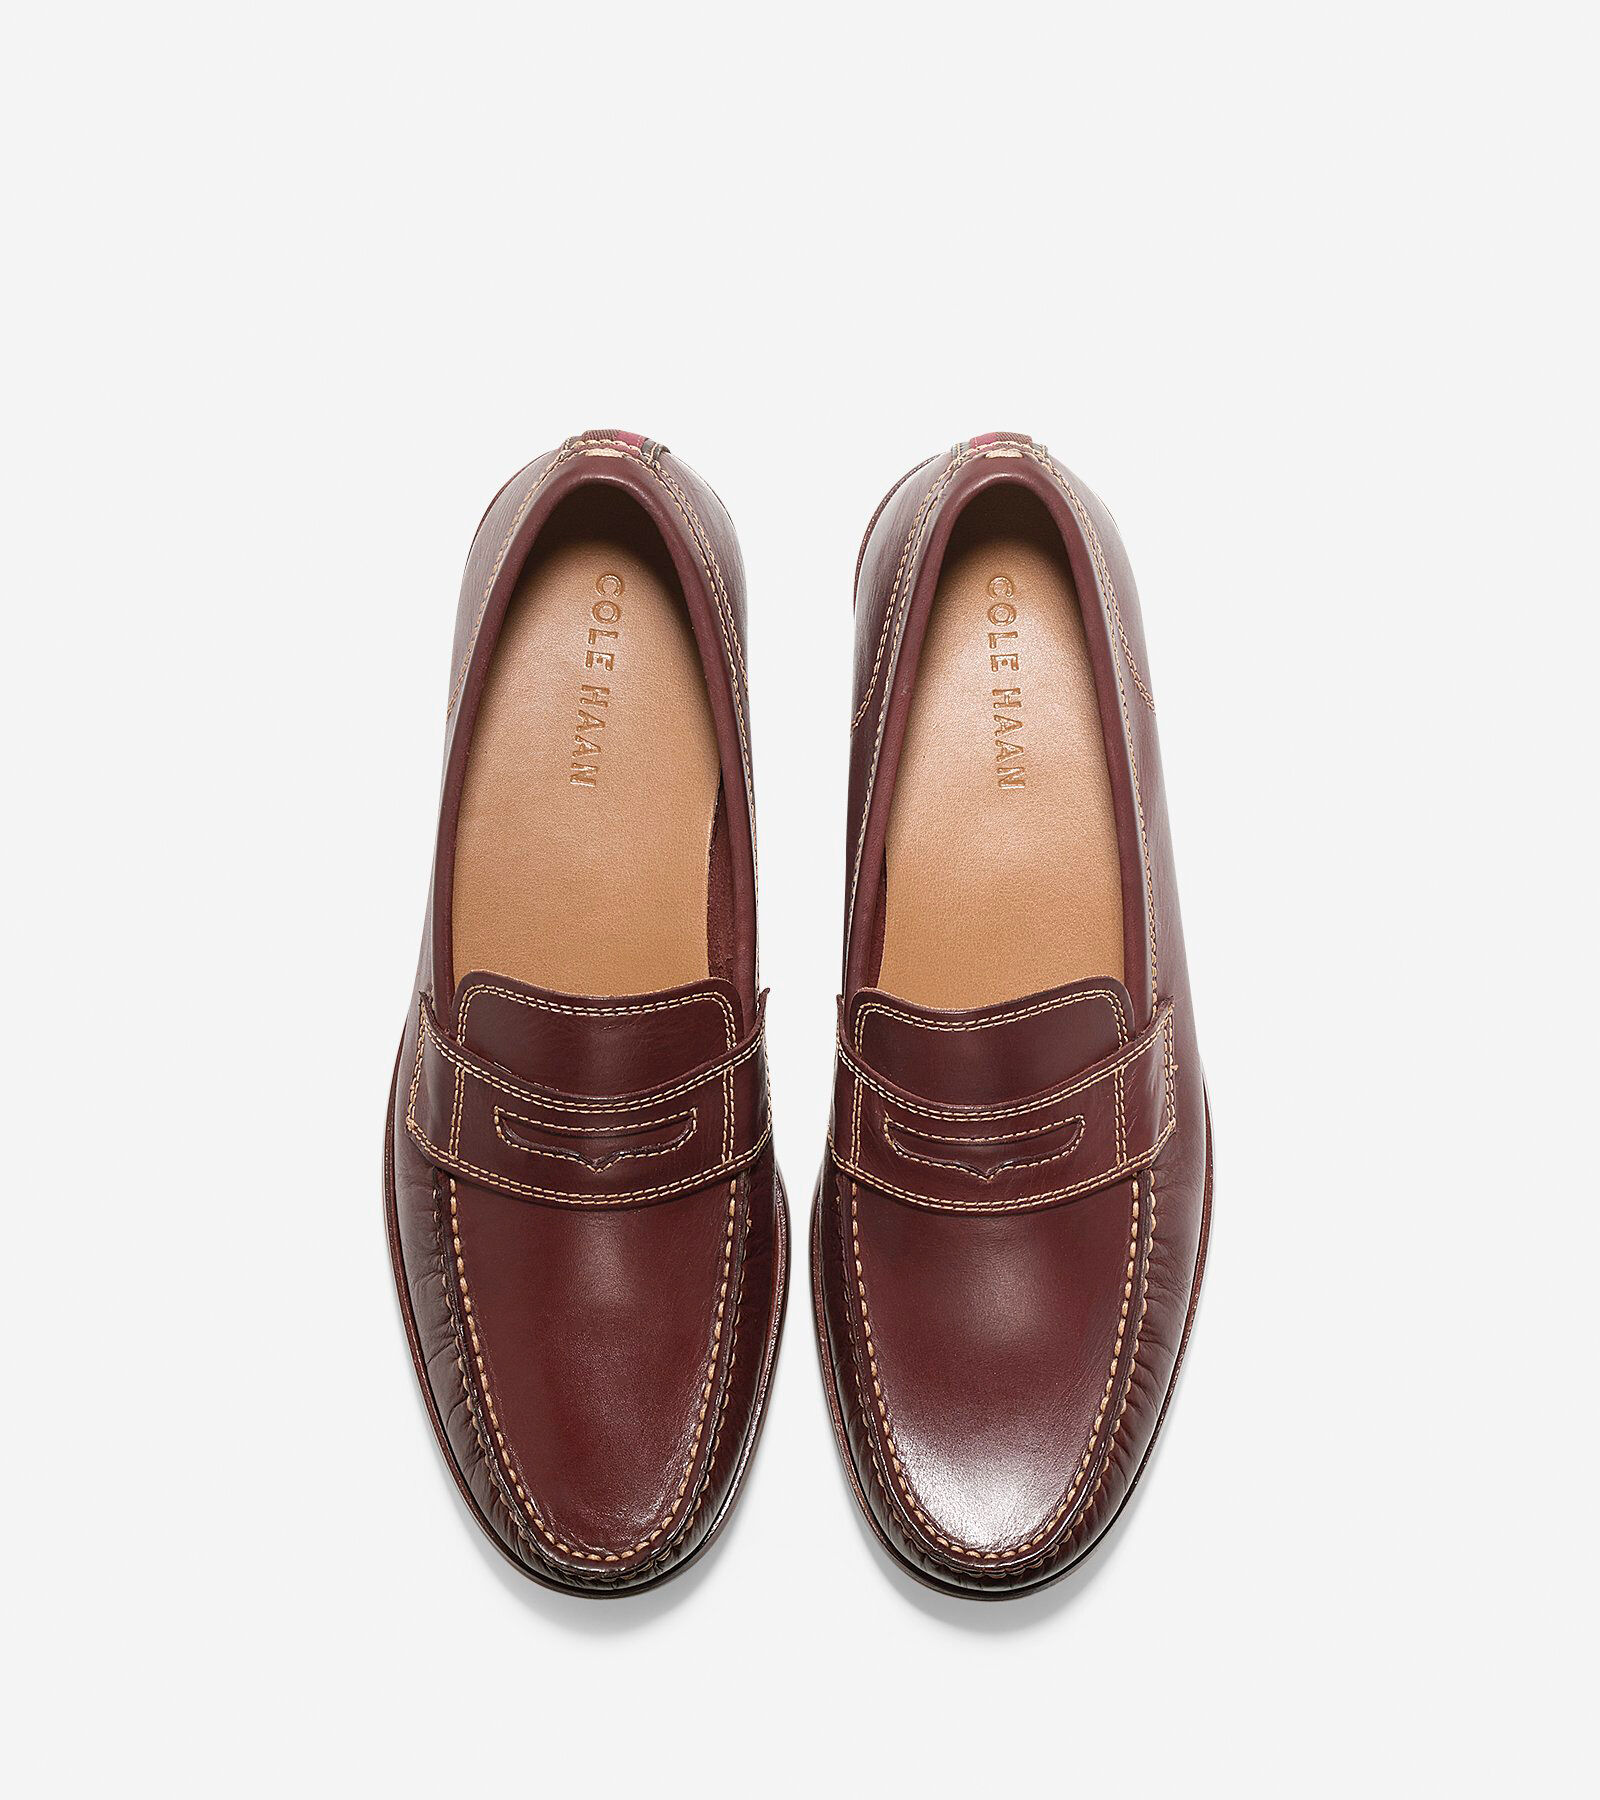 cole haan shoes repairs hiw to diy ripped 700107